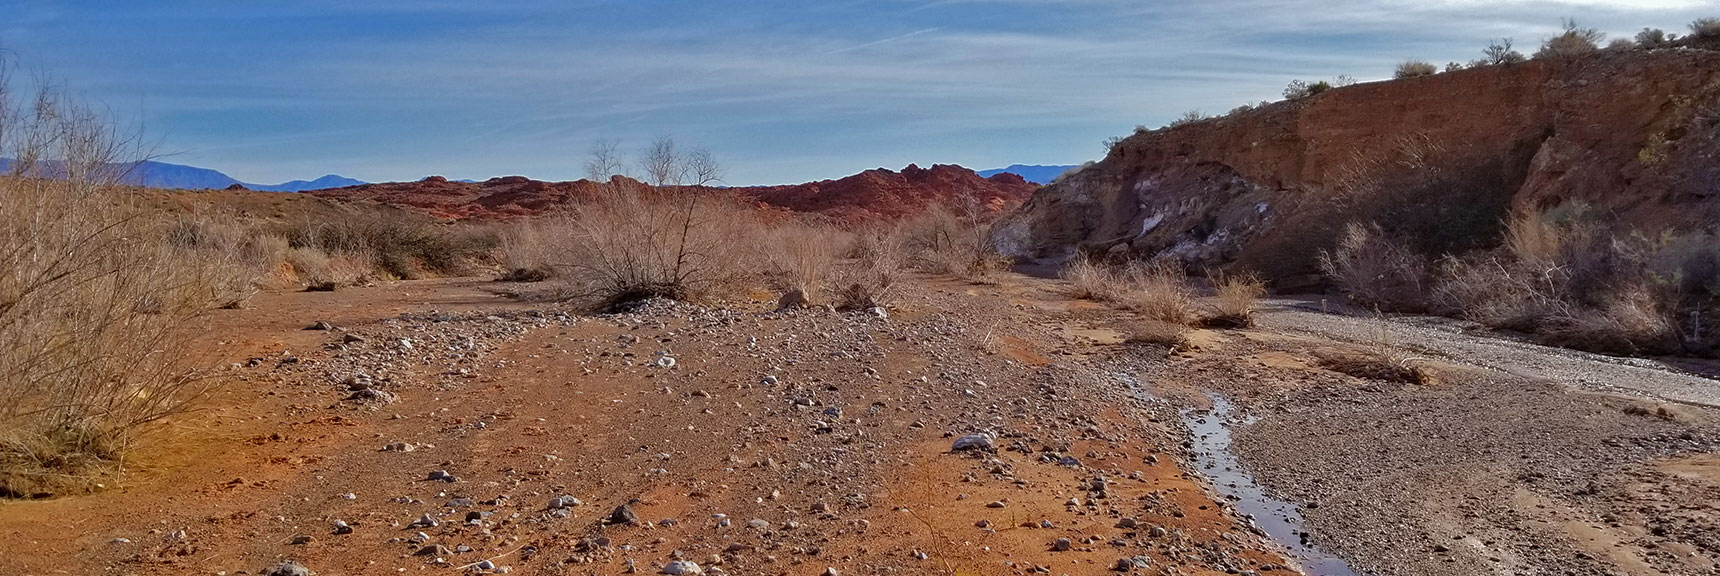 Traveling East Down Wash Beyond Old Arrowhead Trail in Valley of Fire State Park, Nevada